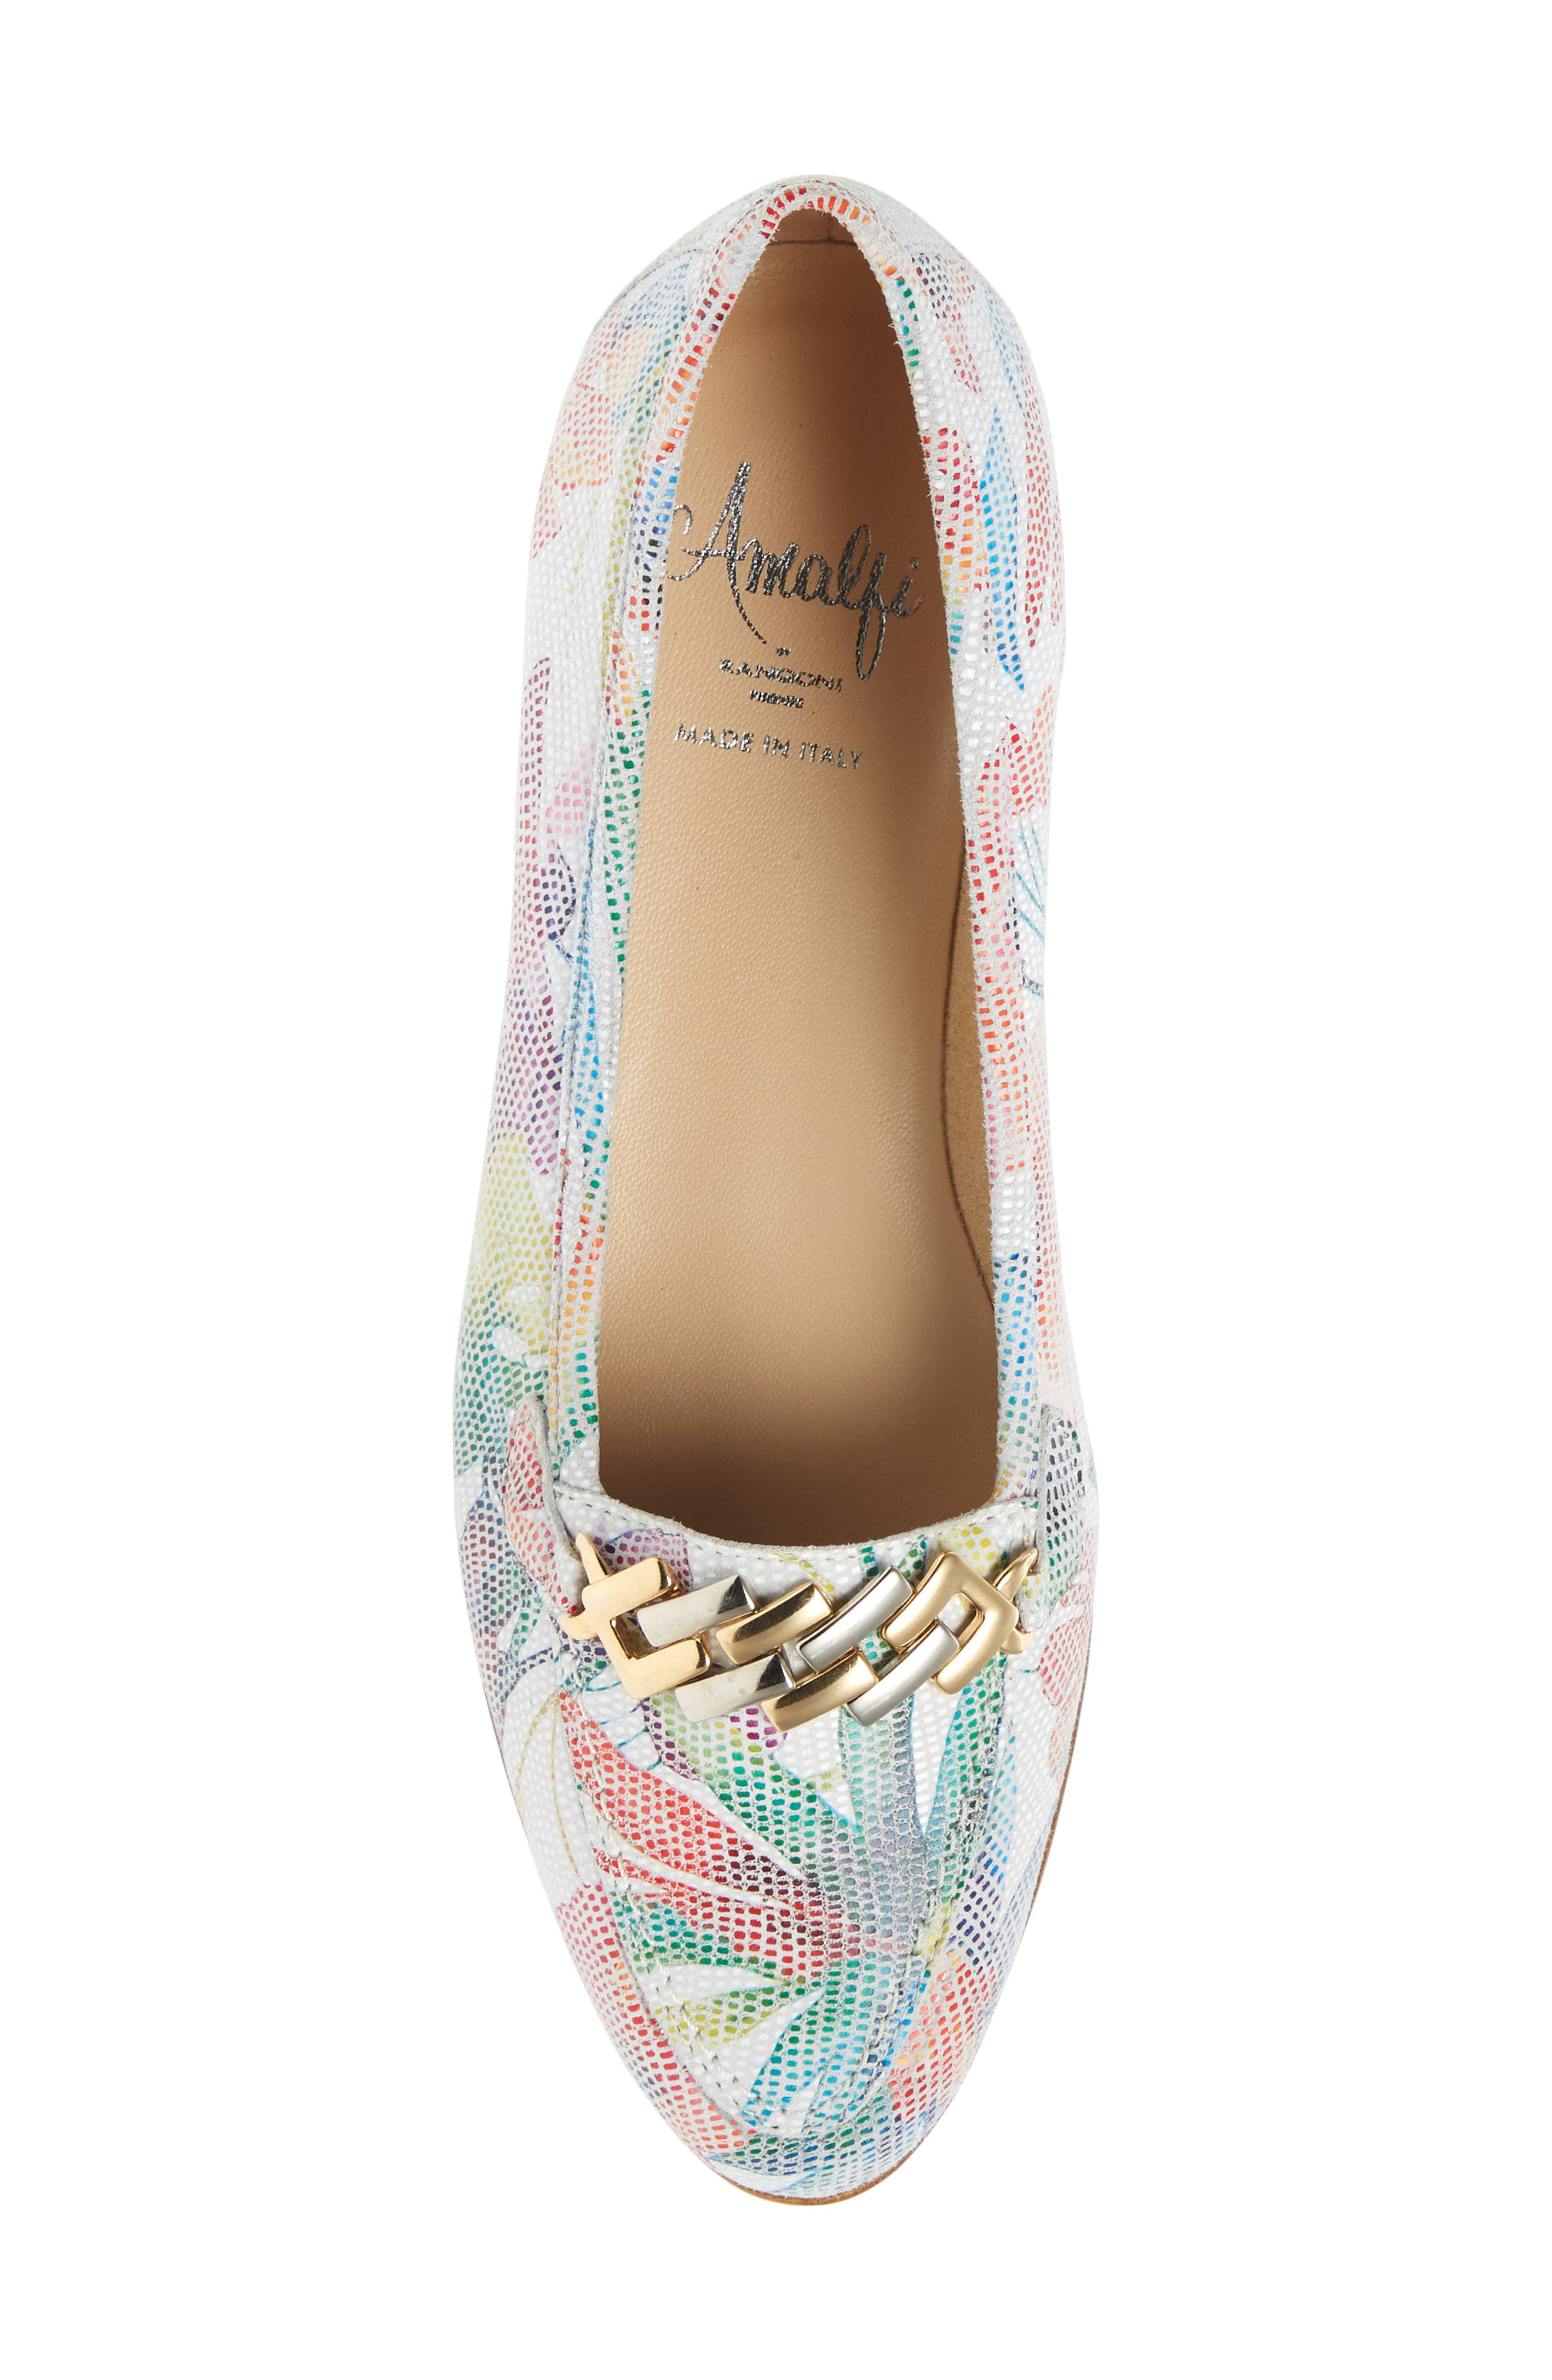 AMALFI BY RANGONI,                             Oste Loafer,                             Alternate thumbnail 5, color,                             WHITE LEATHER